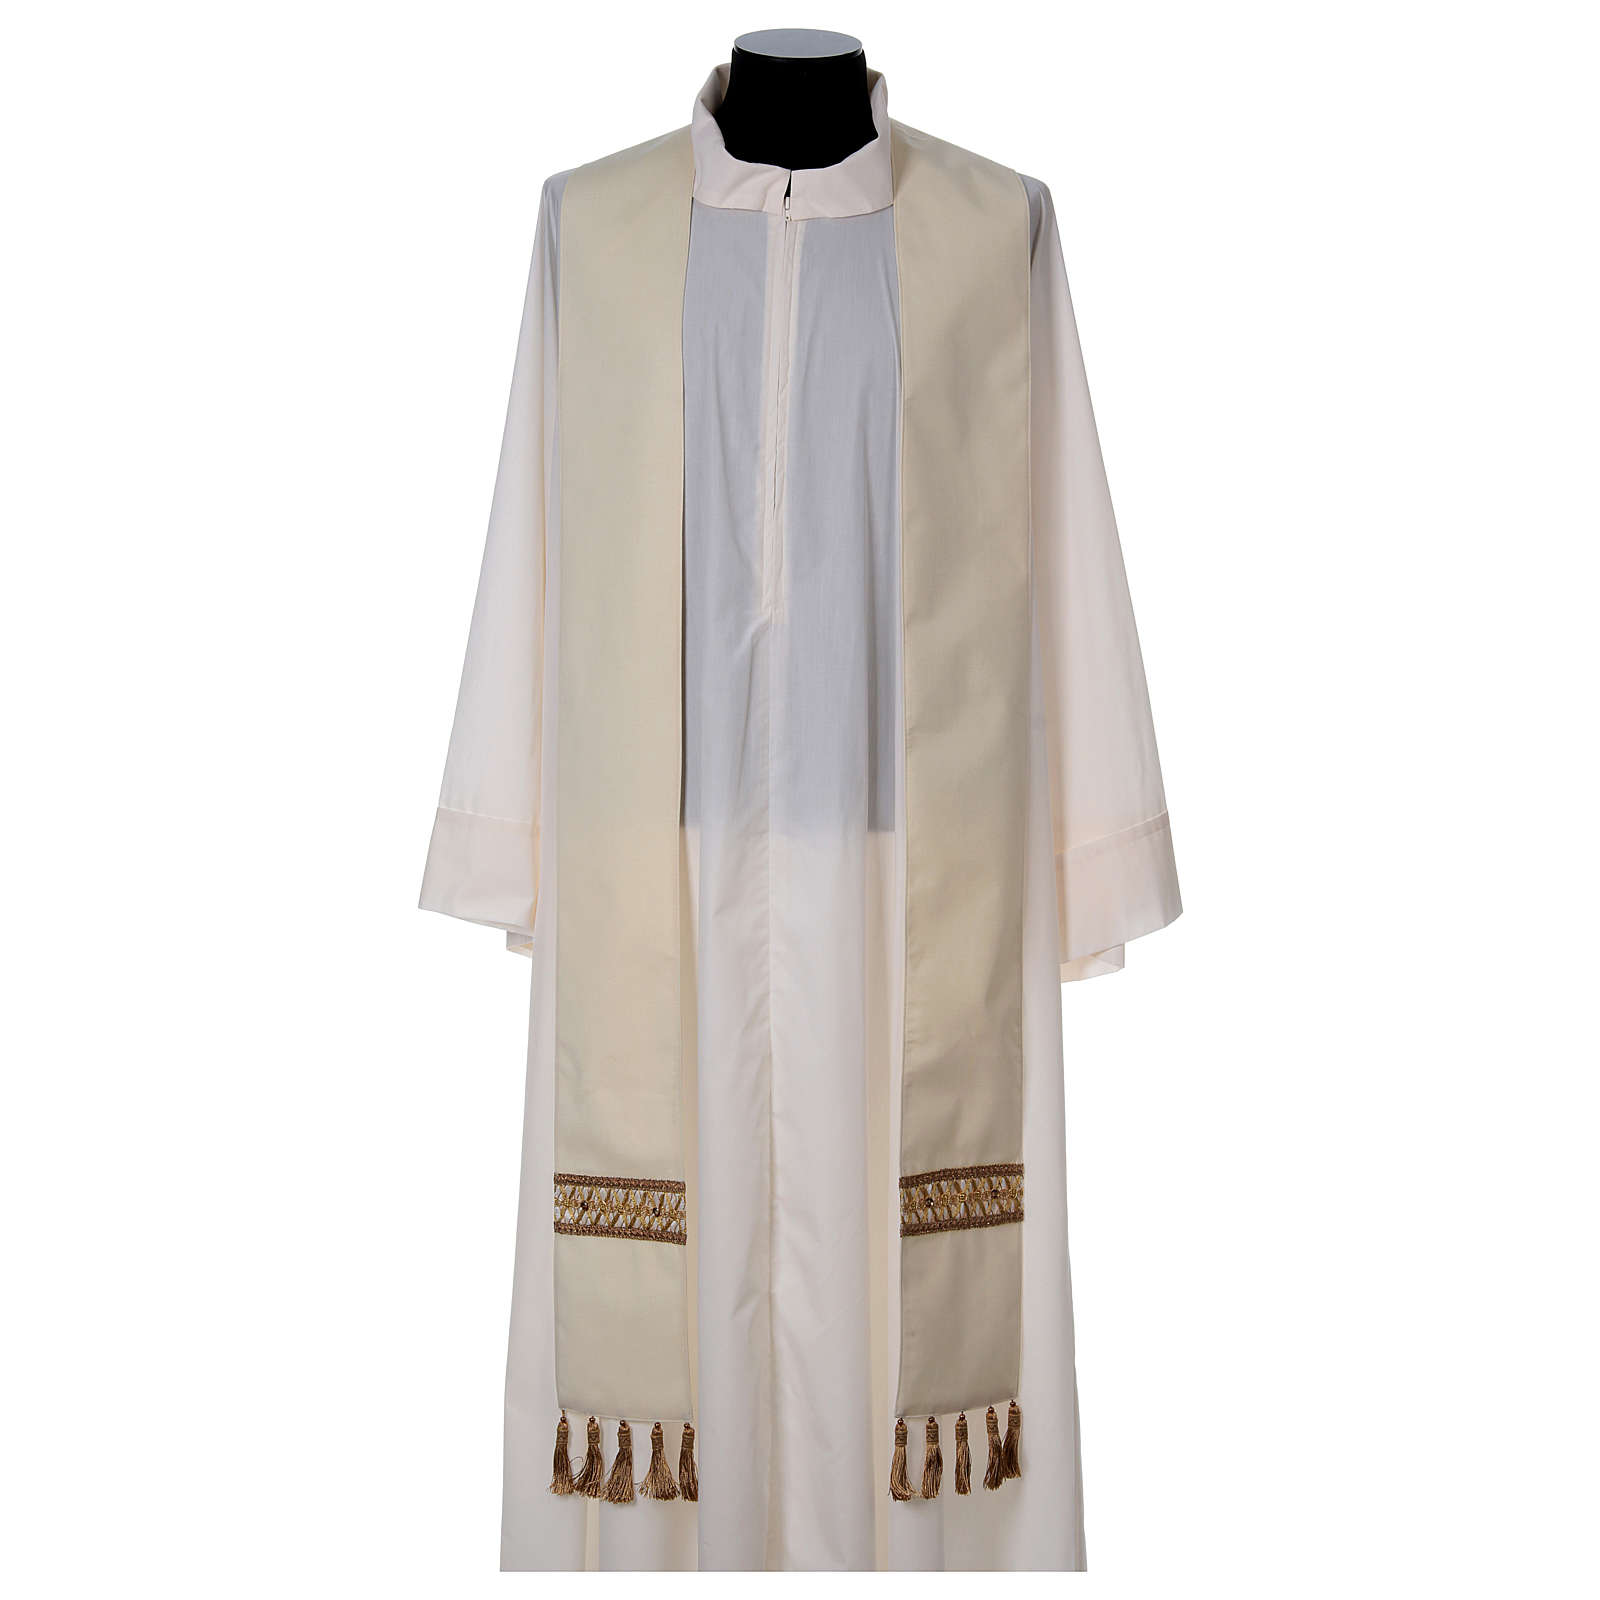 Chasuble with golden braided neckline and banding, 100% wool 4